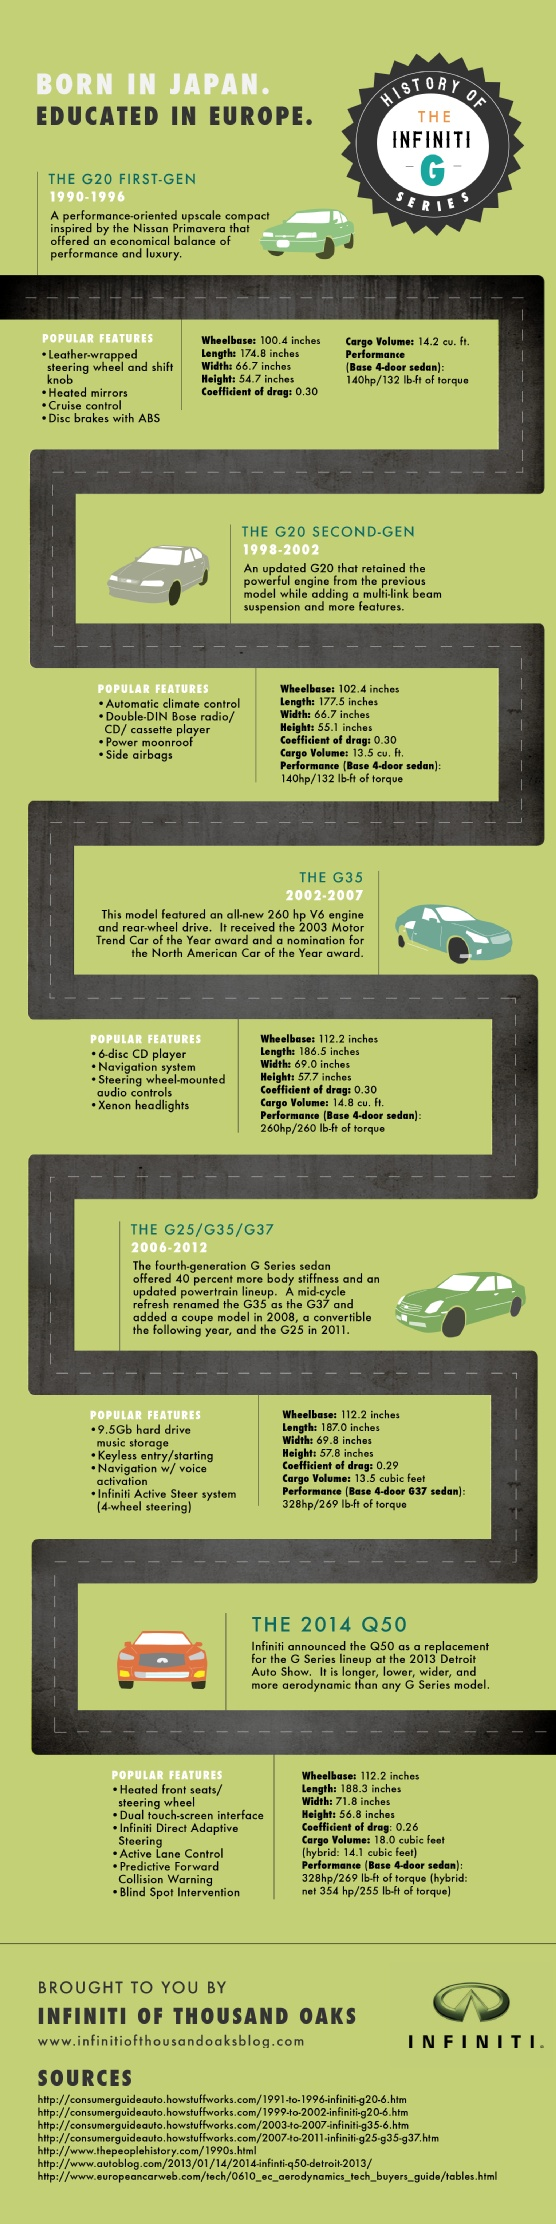 It's hard to compete in the entry-level luxury market, but the Infiniti G series has been going strong for over two decades. Get a closer look at the new vehicles in Infiniti's lineup in this infographic from a Thousand Oaks Infiniti dealer.  Infographic Source: http://www.infinitiofthousandoaksblog.com/639728/2013/02/05/history-of-the-infiniti-g-series-infographic.html